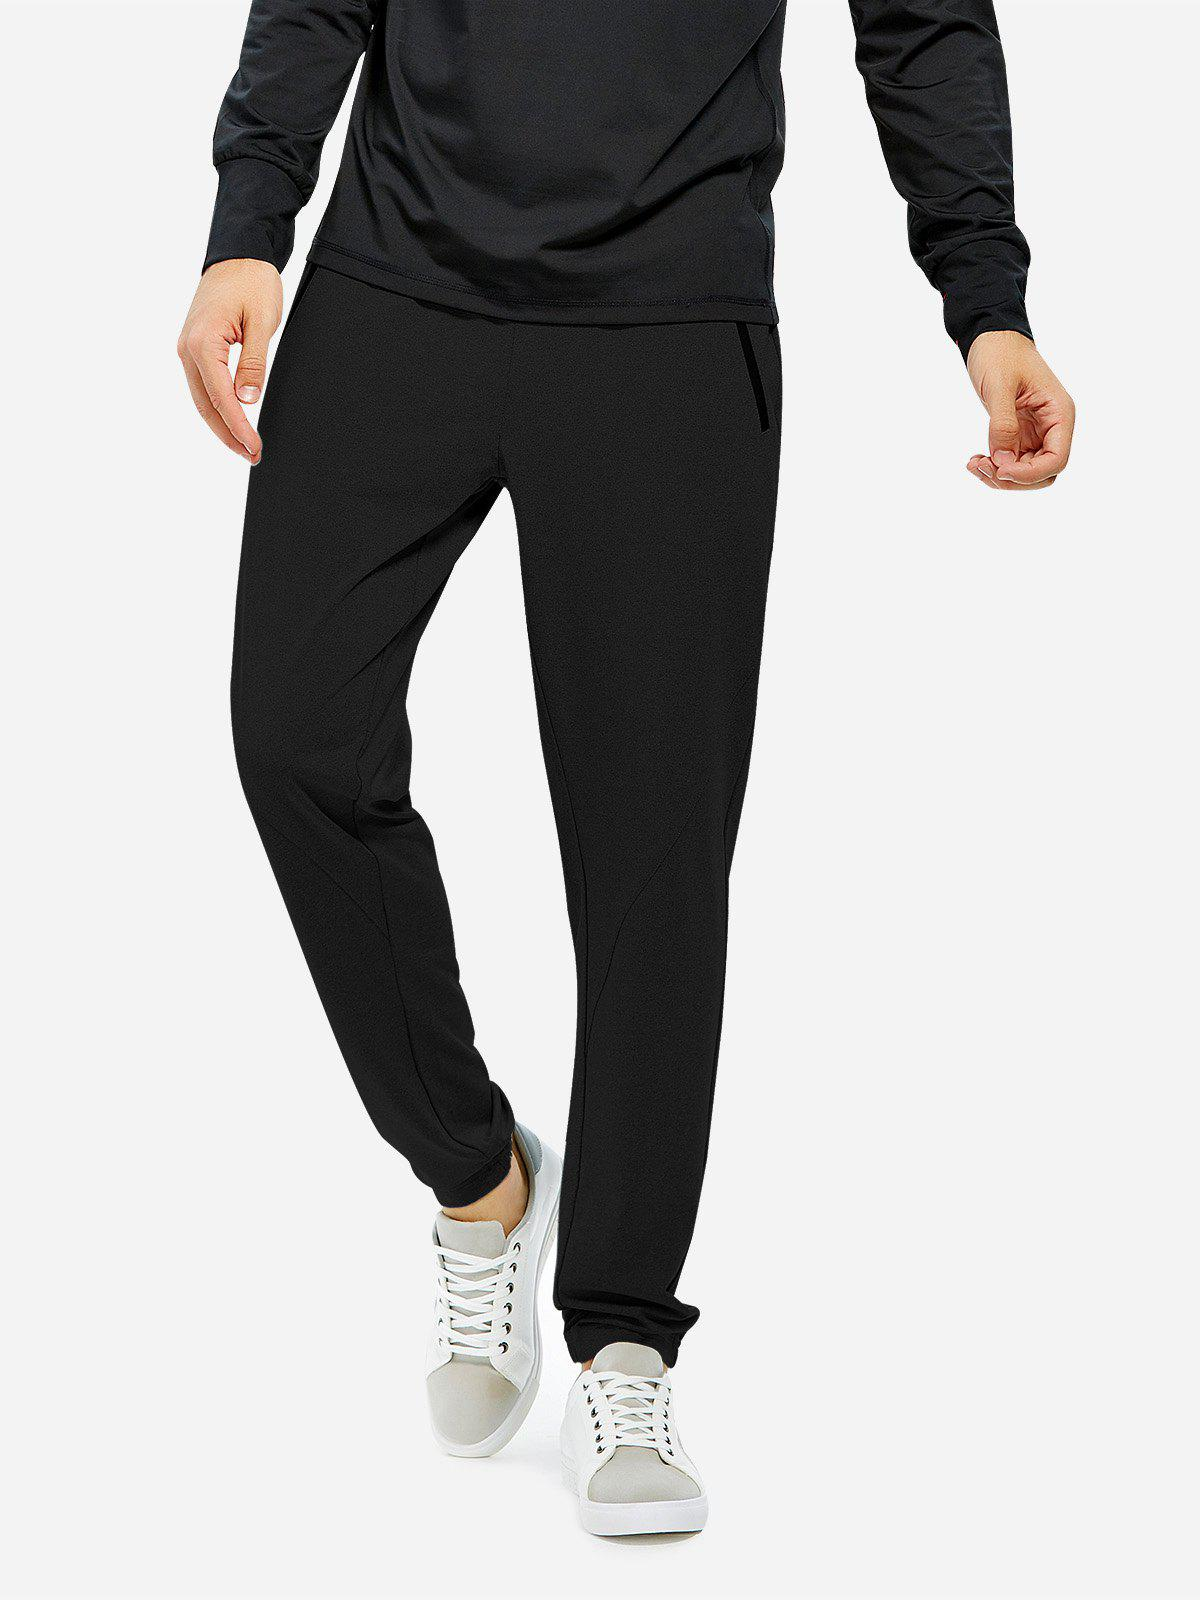 Hot ZAN.STYLE Men Joggers Sweatpants with Zip Pocket